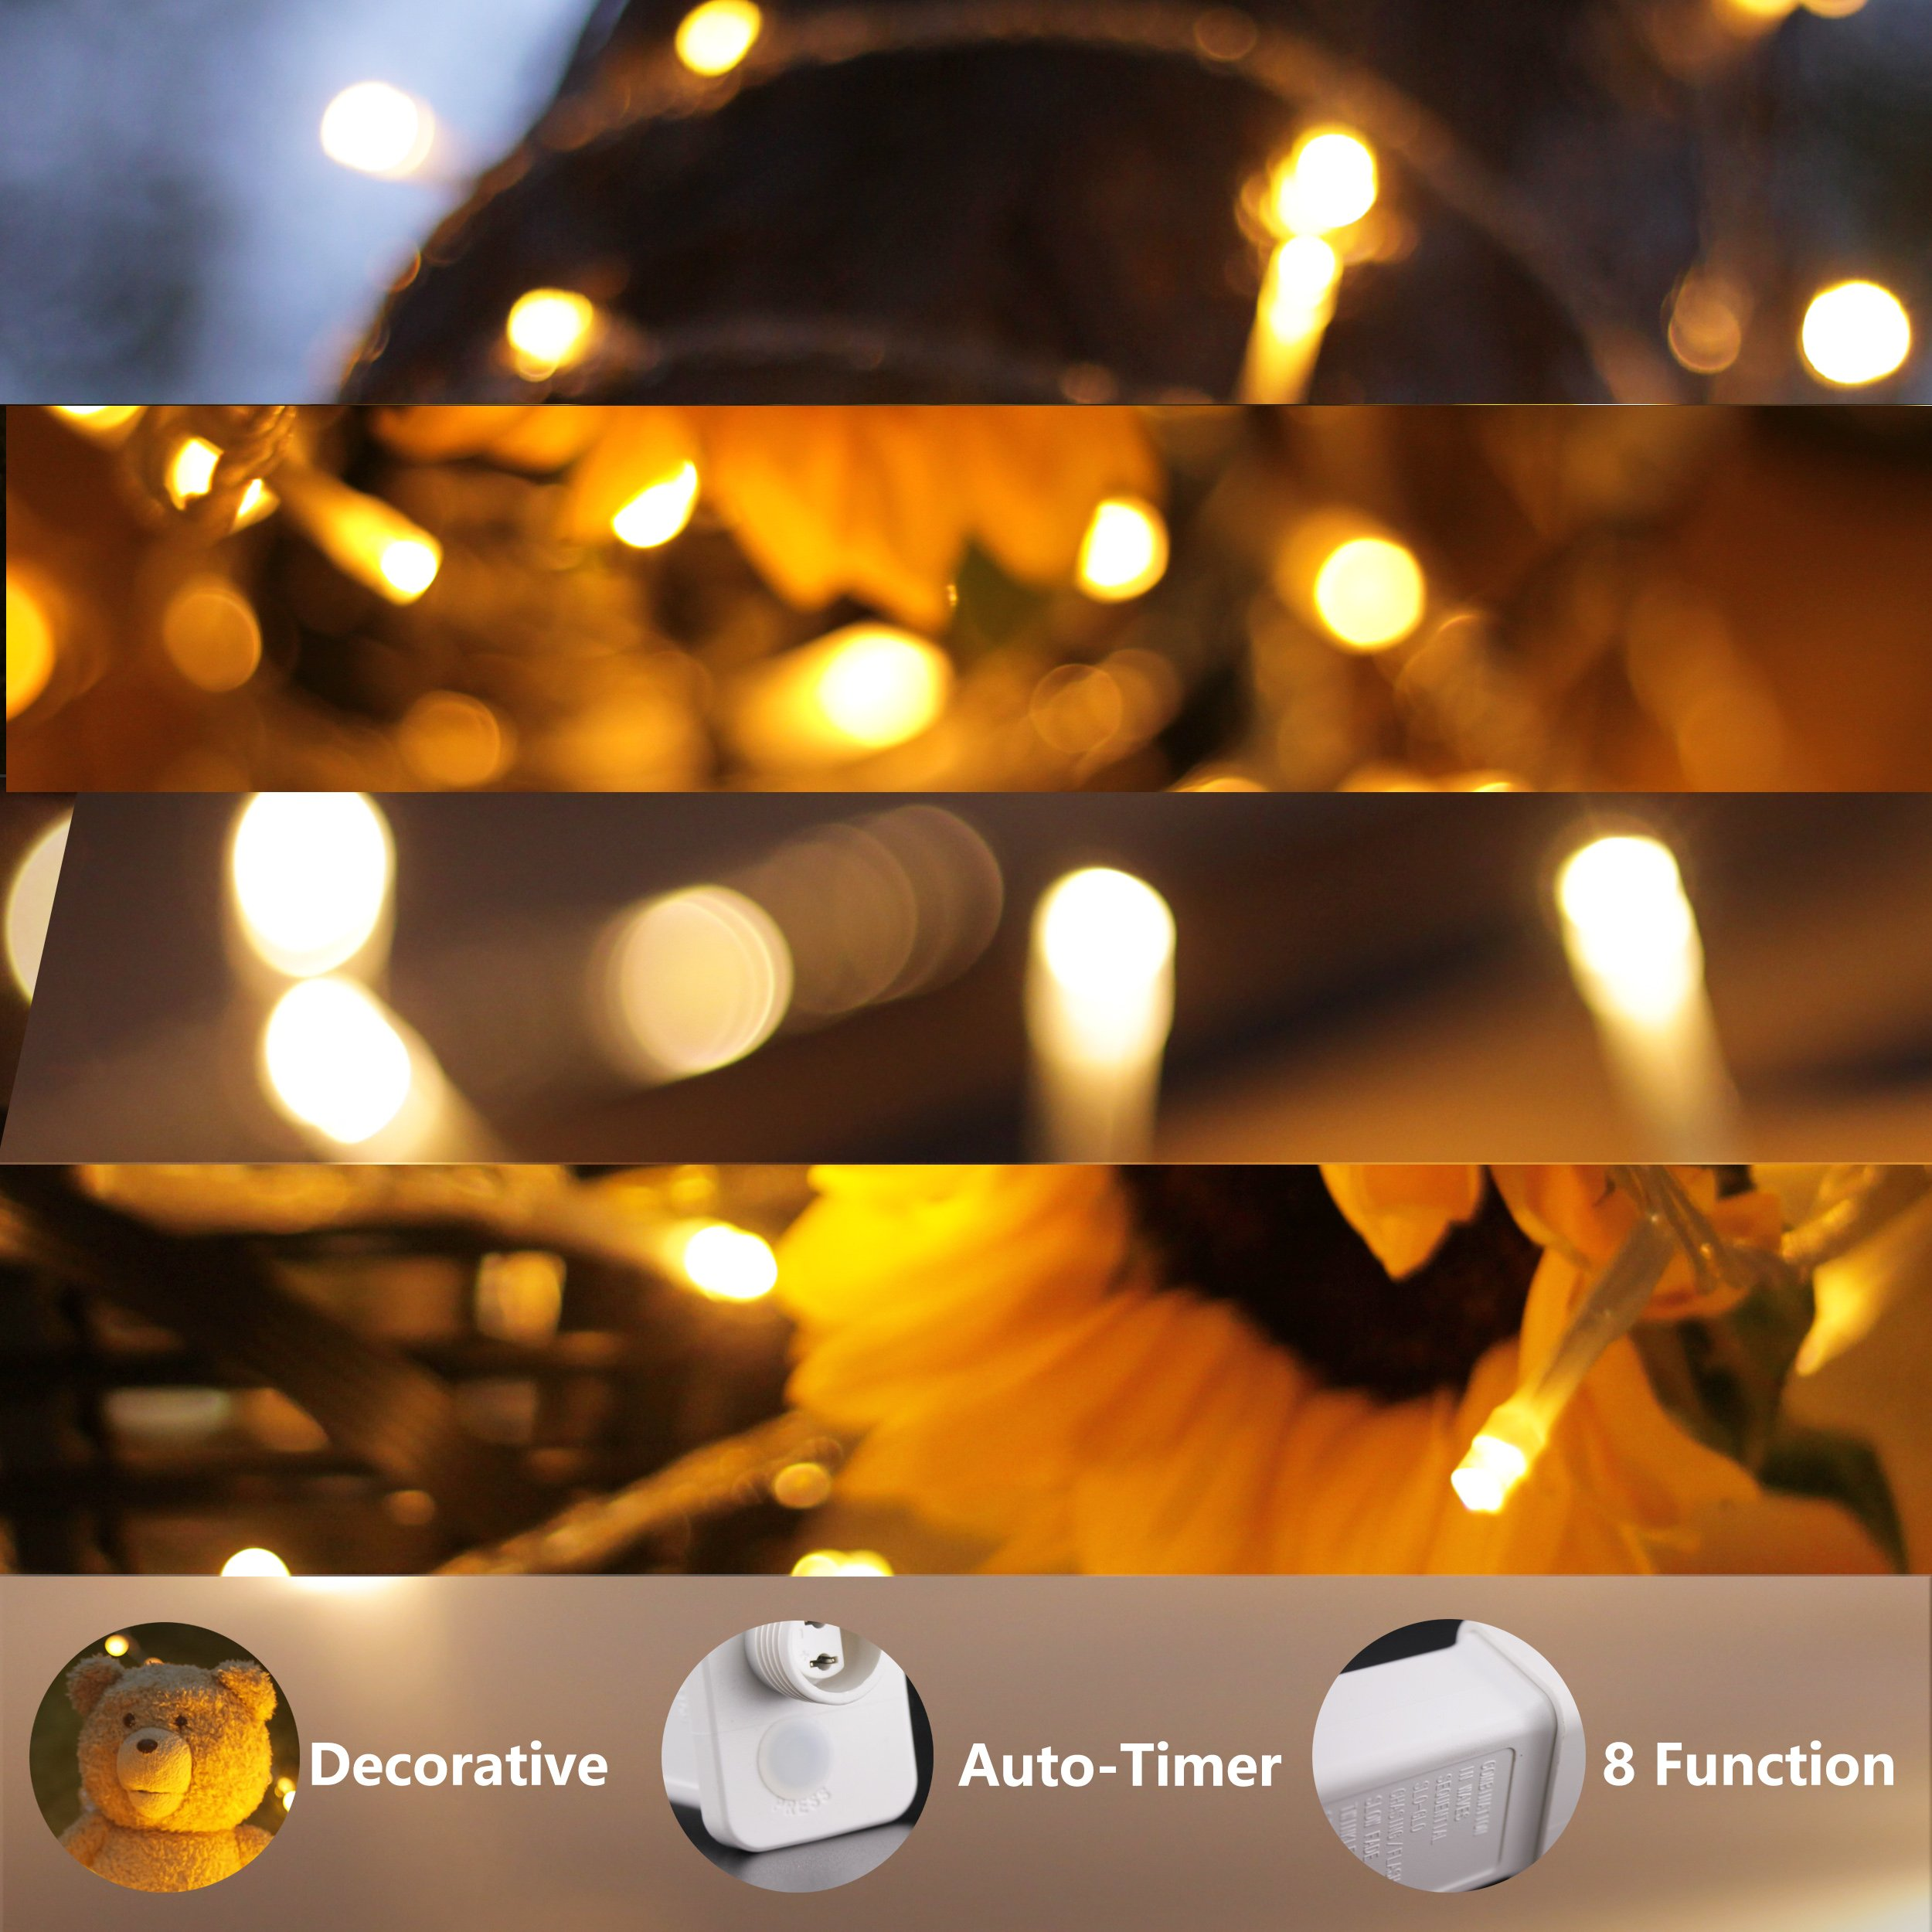 LouisChoice Extension Set of myCozyLite LED String Lights, 33 Ft, 100 LED, Waterproof with Male and Female Plug, Indoor & Outdoor Use (Transformer NOT Included) by LouisChoice (Image #6)